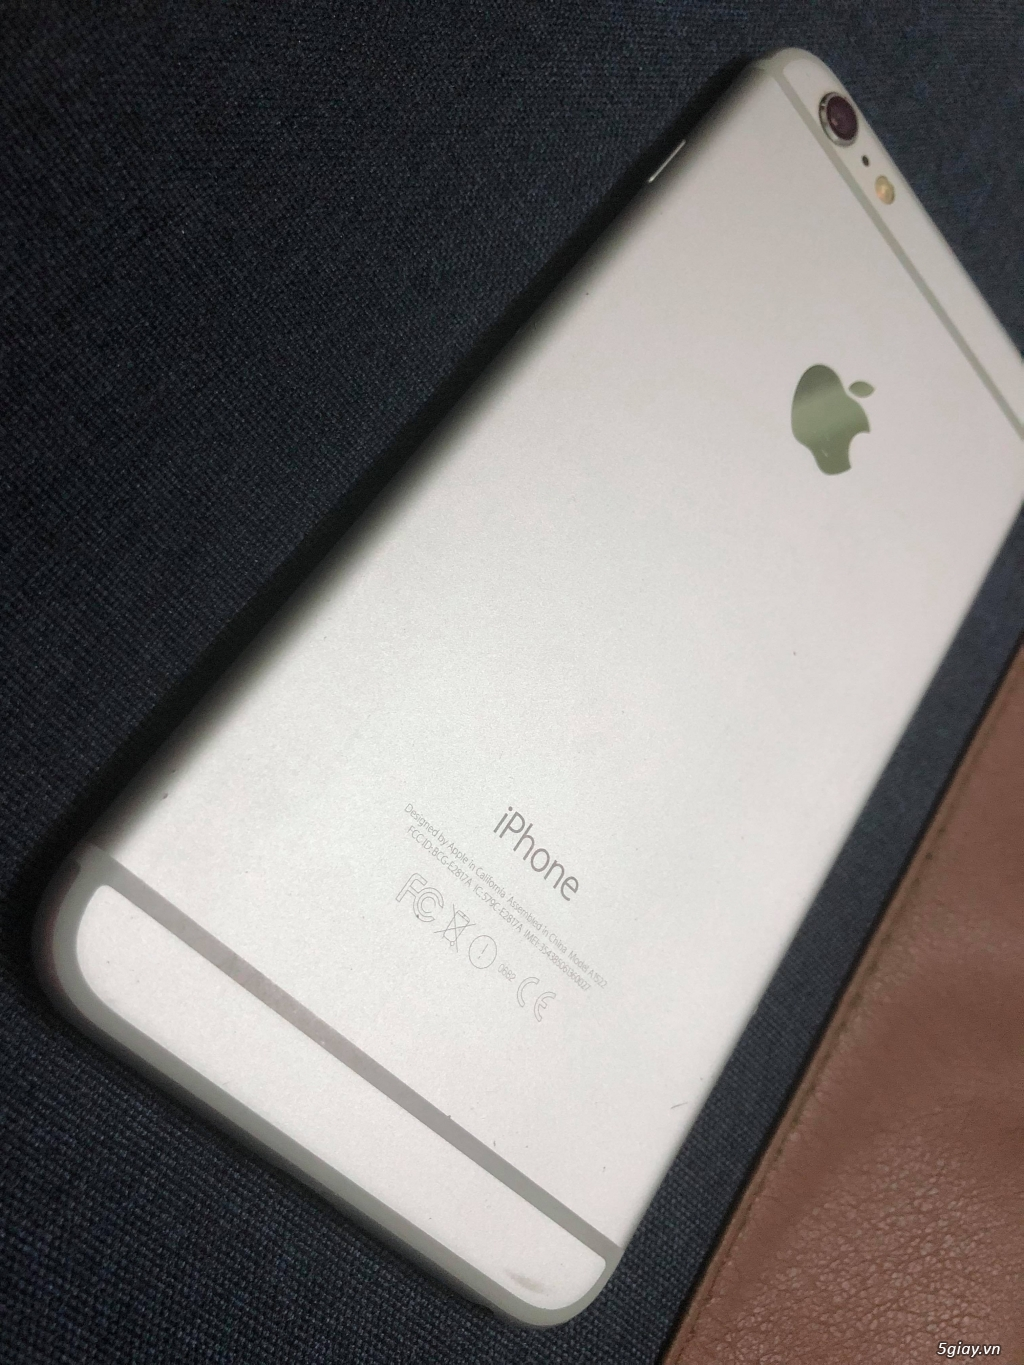 Iphone 6 Plus 16gb Silver nữ xài - 1